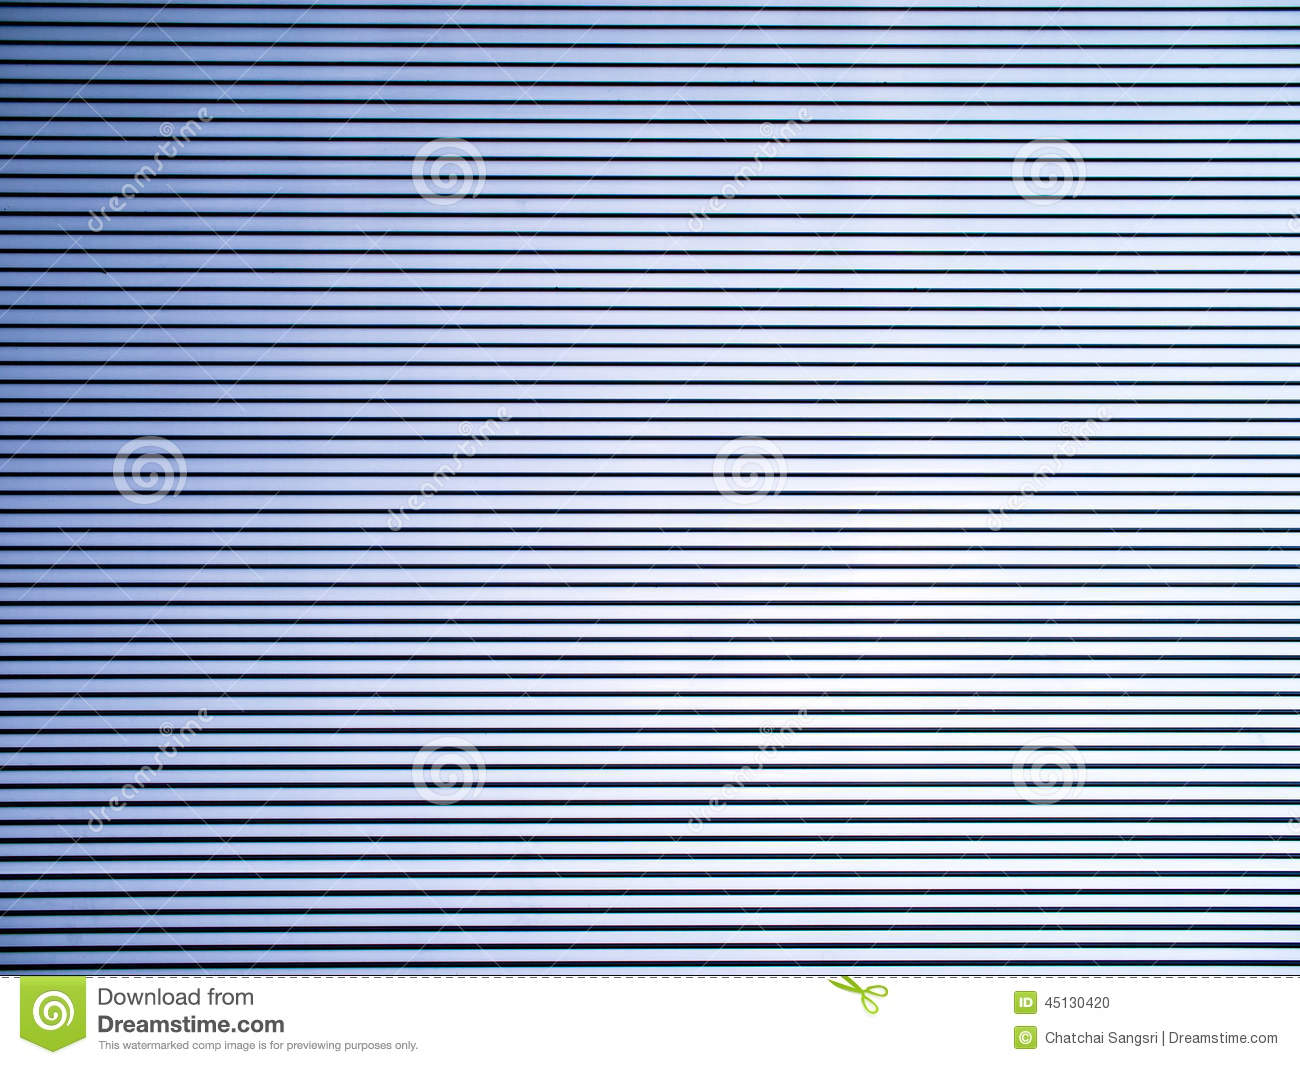 Polycarbonate Sheet Stock Photo Image 45130420